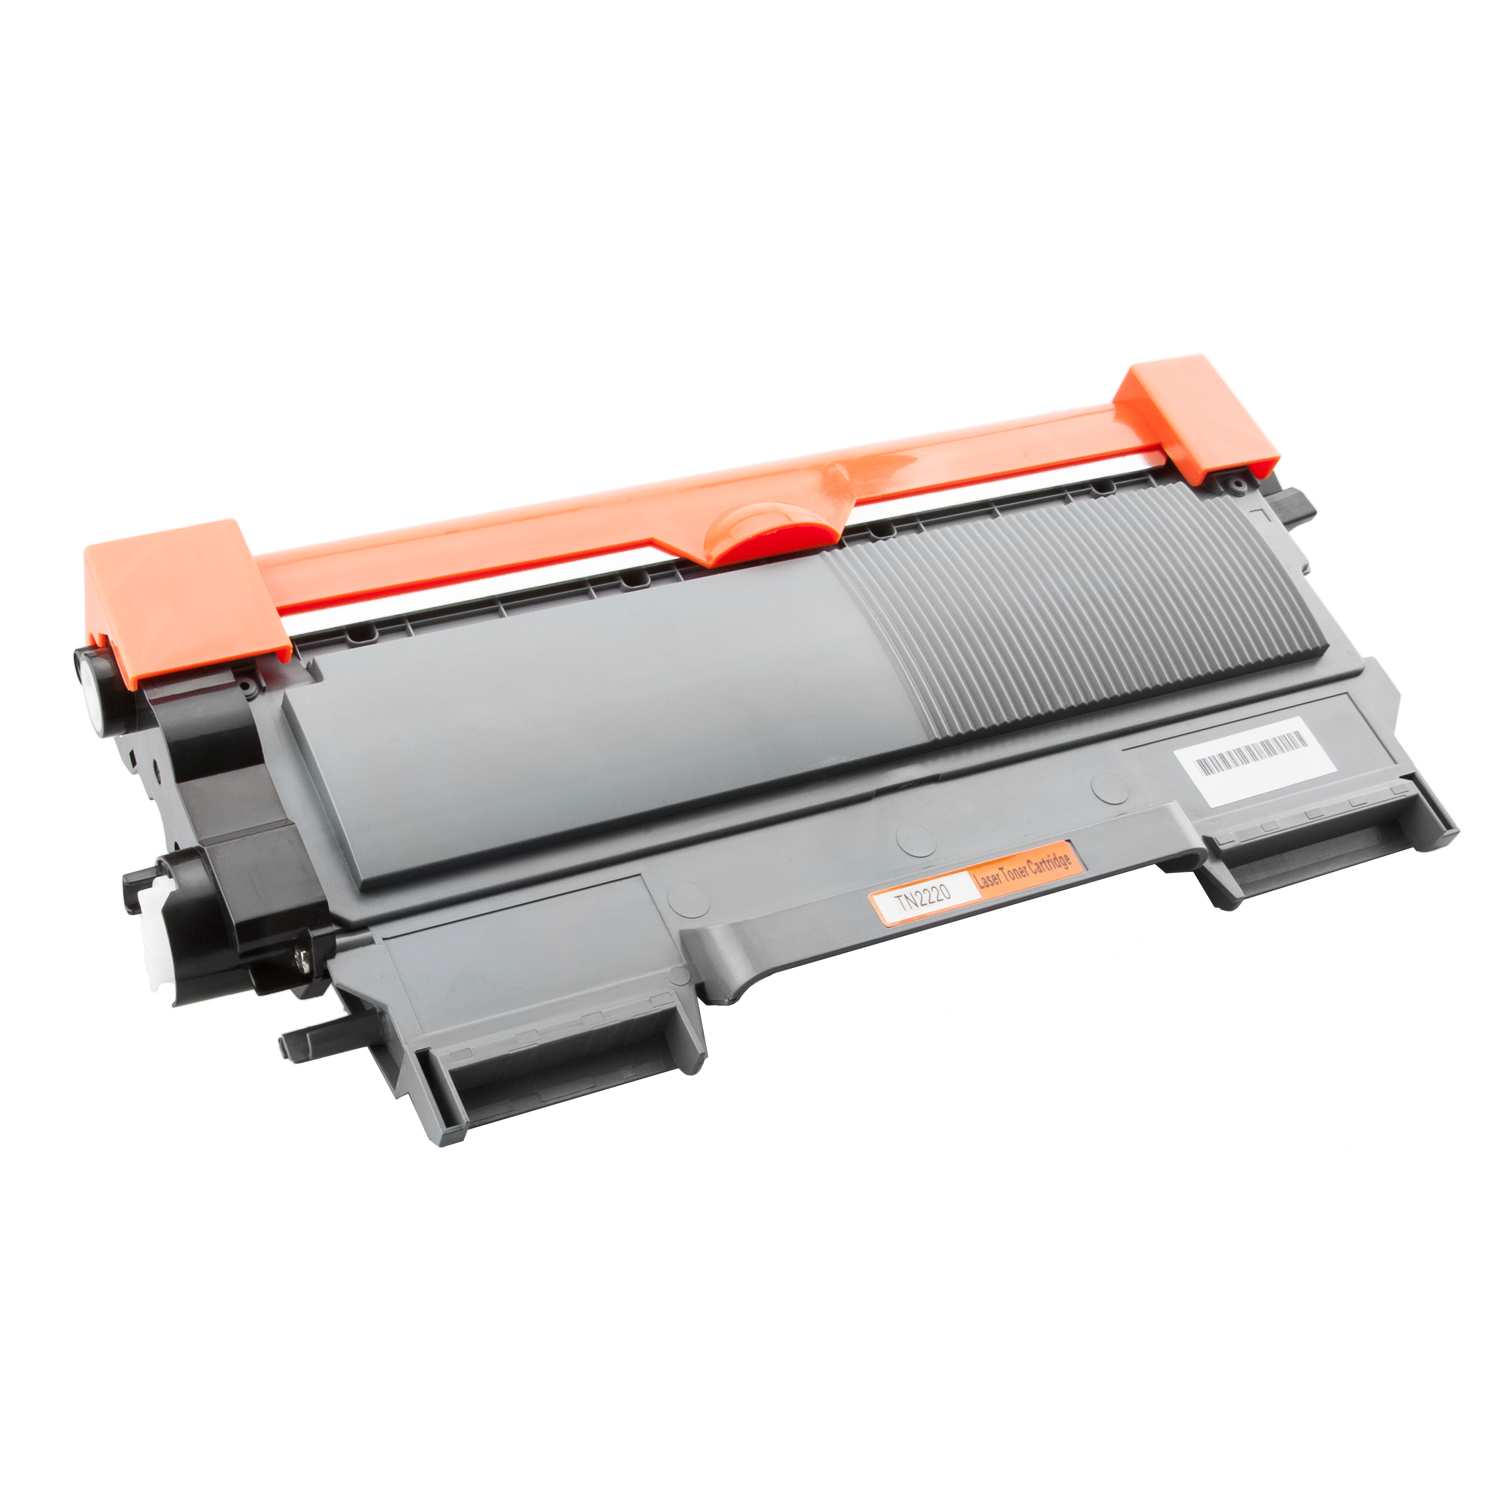 Toner SuperXL ProSerie kompatibel zu Brother TN-2220